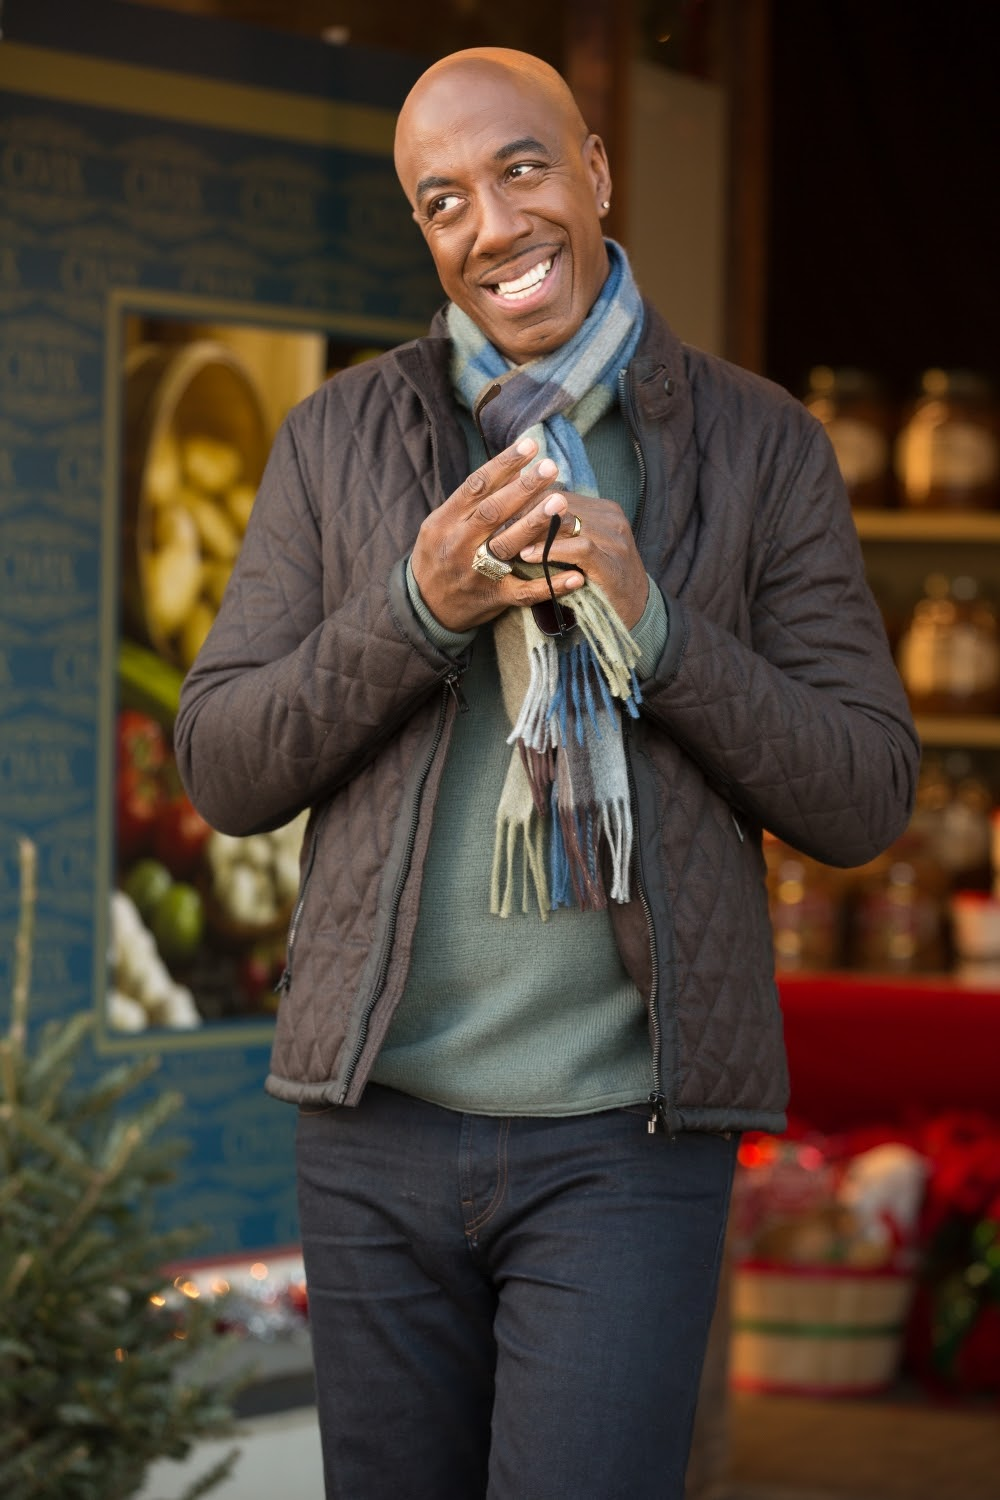 JB Smoove in ALMOST CHRISTMAS. (Photo by Quantrell D. Colbert / courtesy of Universal Pictures).